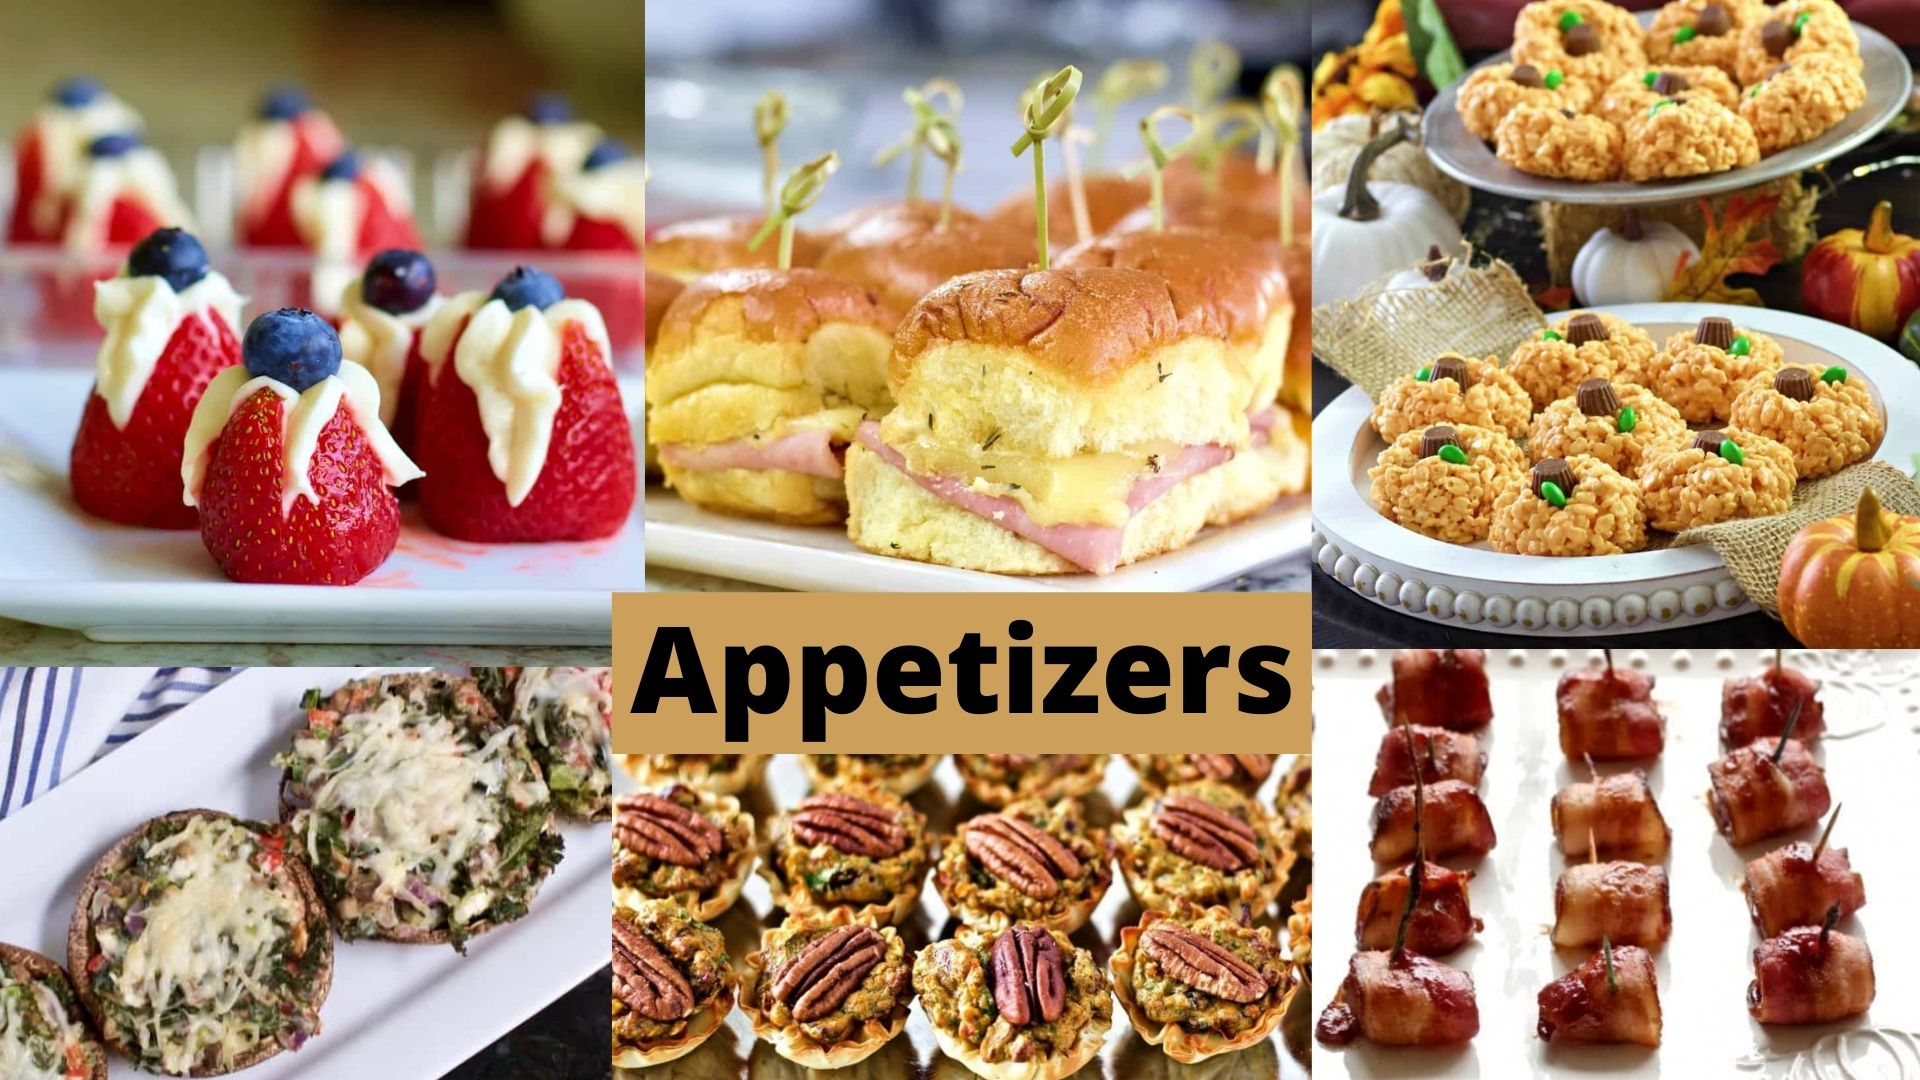 Appetizers for a delicious bite of yum at a party.